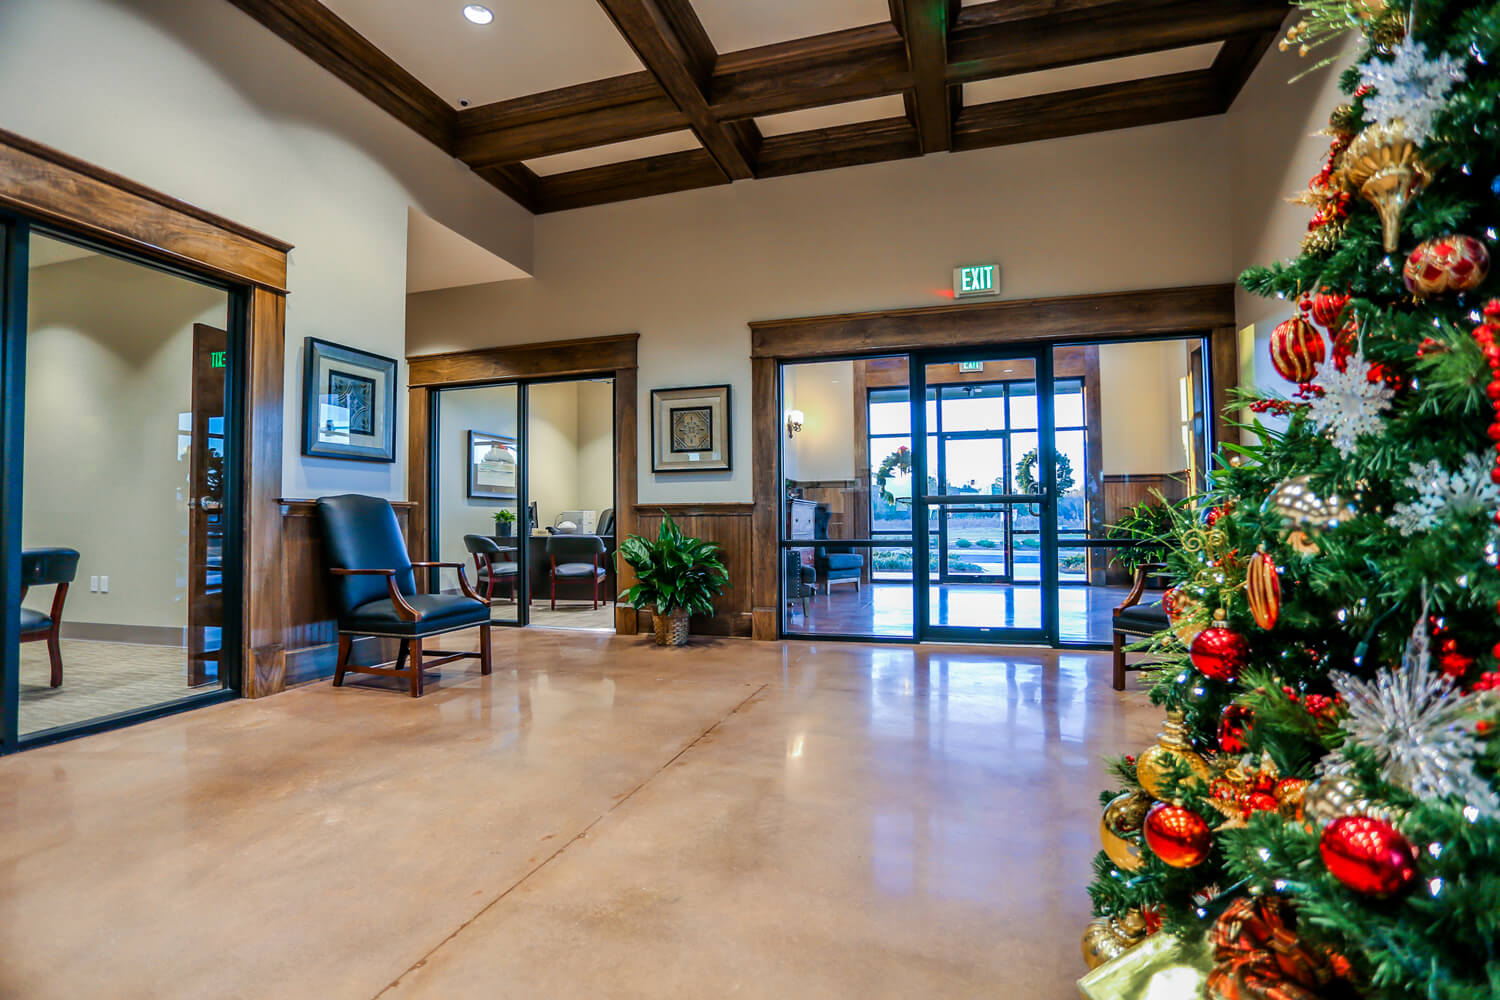 First Cahawba Bank - View of Front Entry - Designed by Foshee Architecture